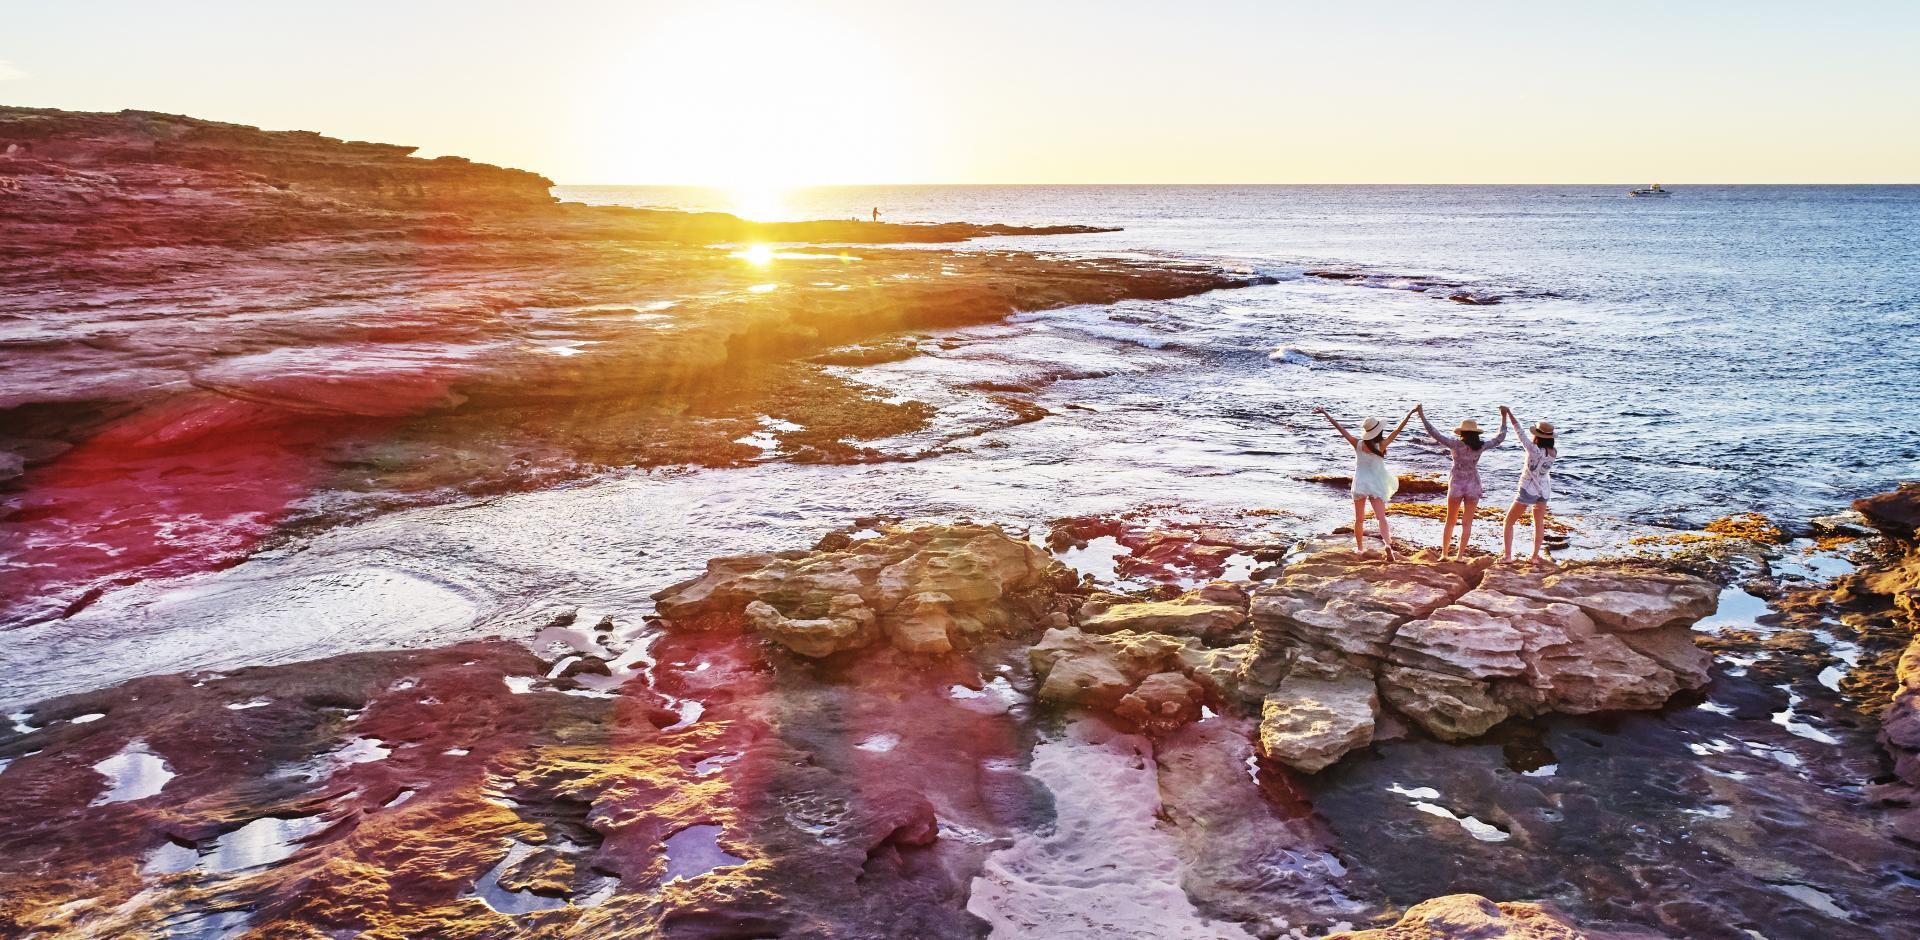 Sunset at Kalbarri's Coastal Cliffs, Kalbarri, Western Australia